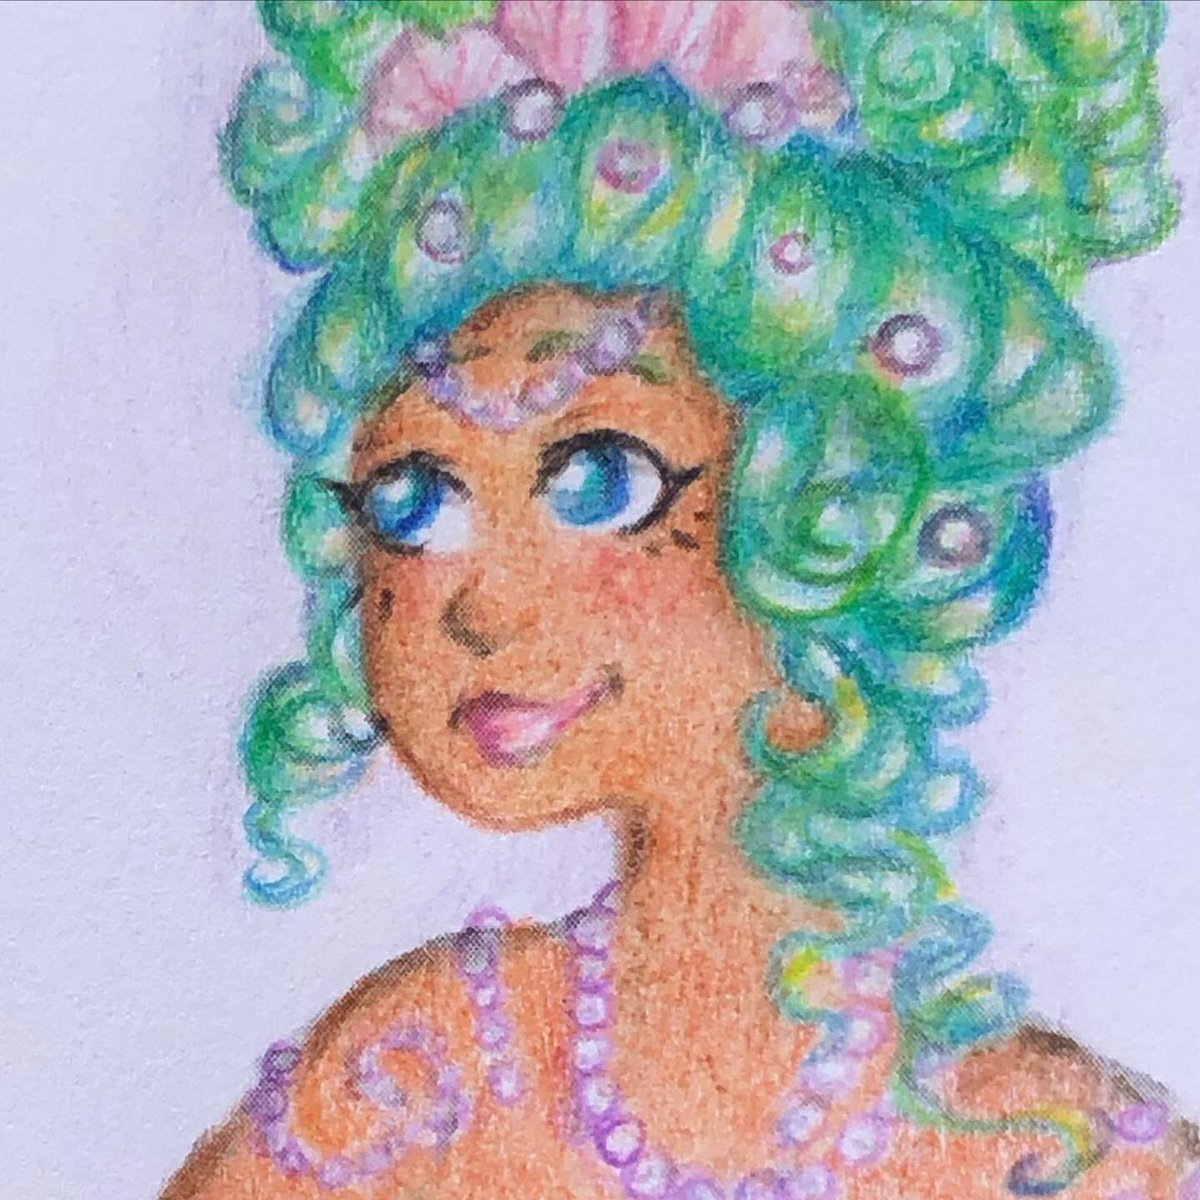 A #dtiys I did for mermay. #mermaid #drawthisinyourstylechallenge #colorpencilpic.twitter.com/4EsV9FErKV